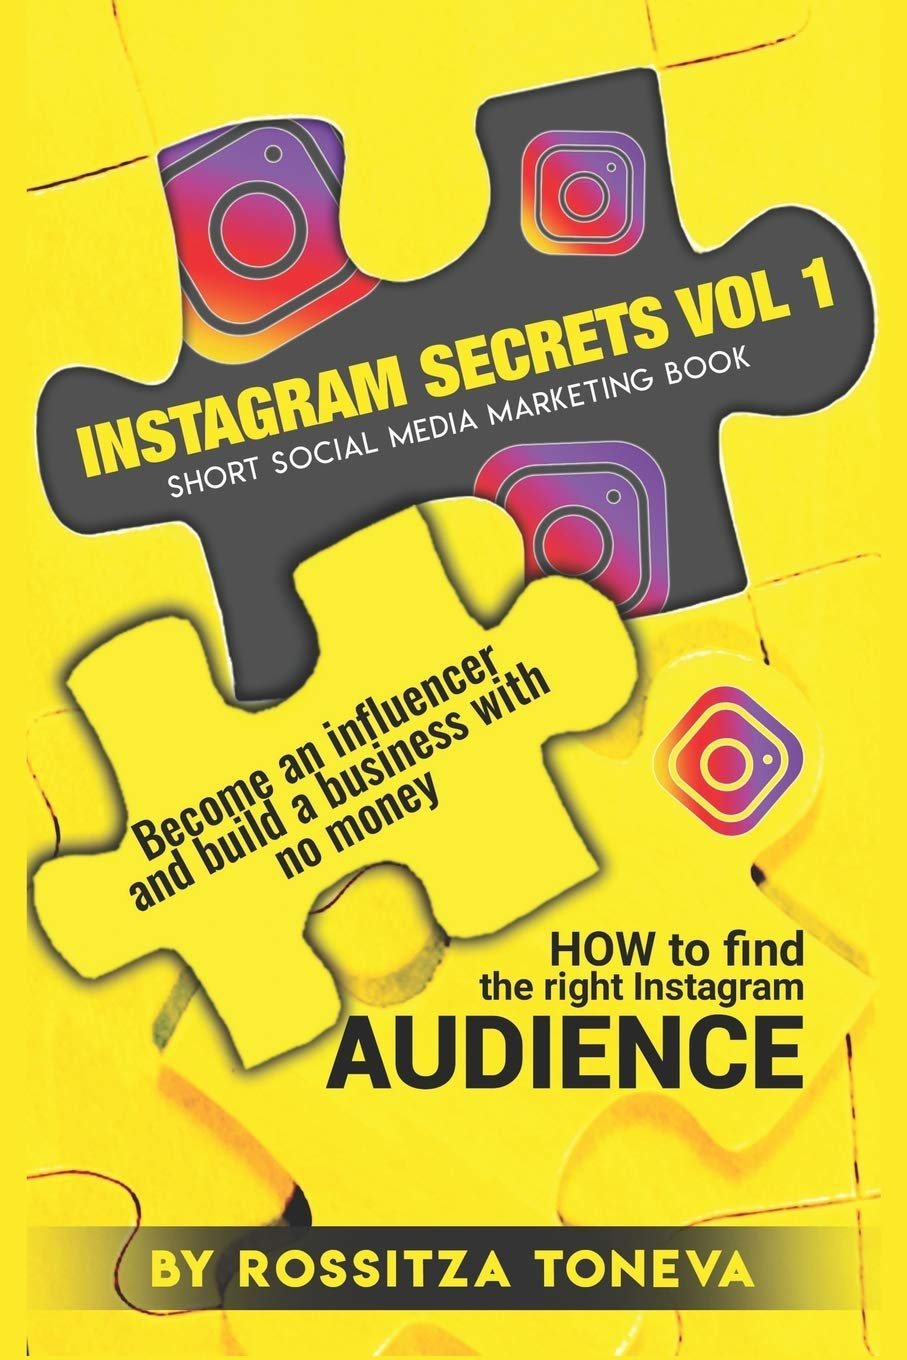 how instagram growth service works entrepreneurship in a box Instagram Secrets Vol 1 How To Find The Right Instagram Audience Become An Influencer And Build A Business With No Money On Instagram Short Social Media Marketing Book Toneva Rossitza Toneva Rossitza